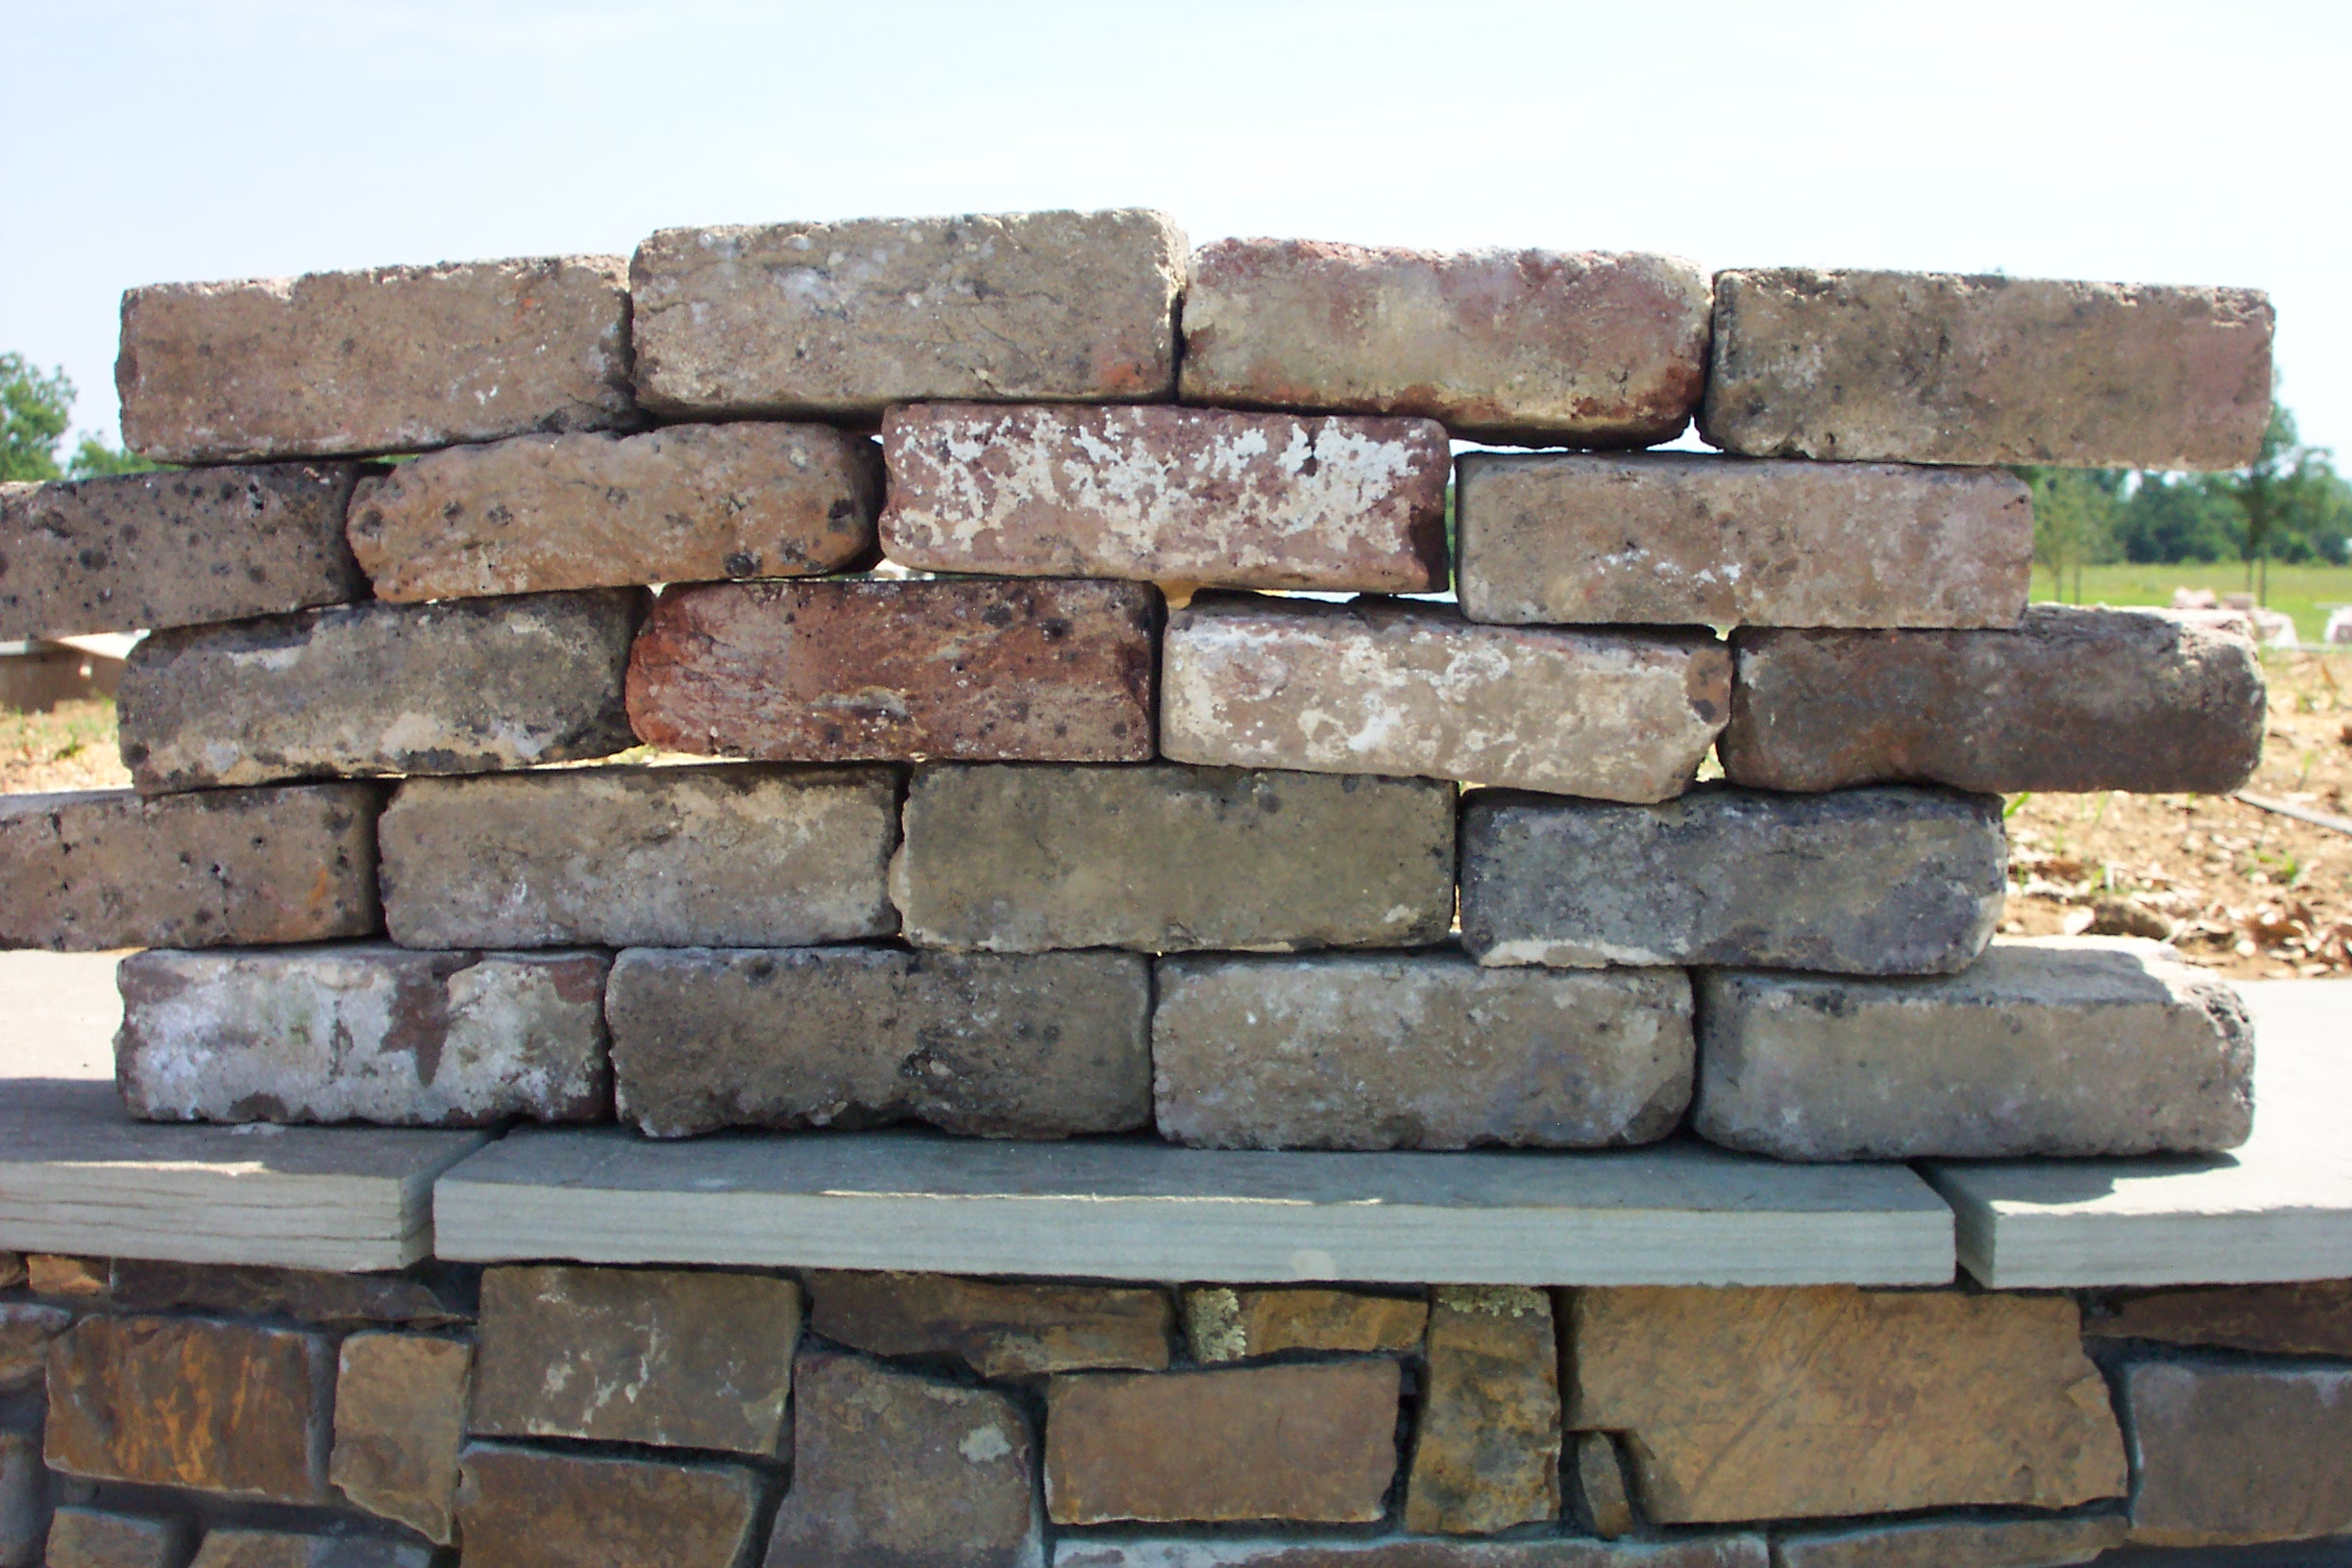 Rare historic and reclaimed bricks uses in today 39 s buildings for Uses for old bricks